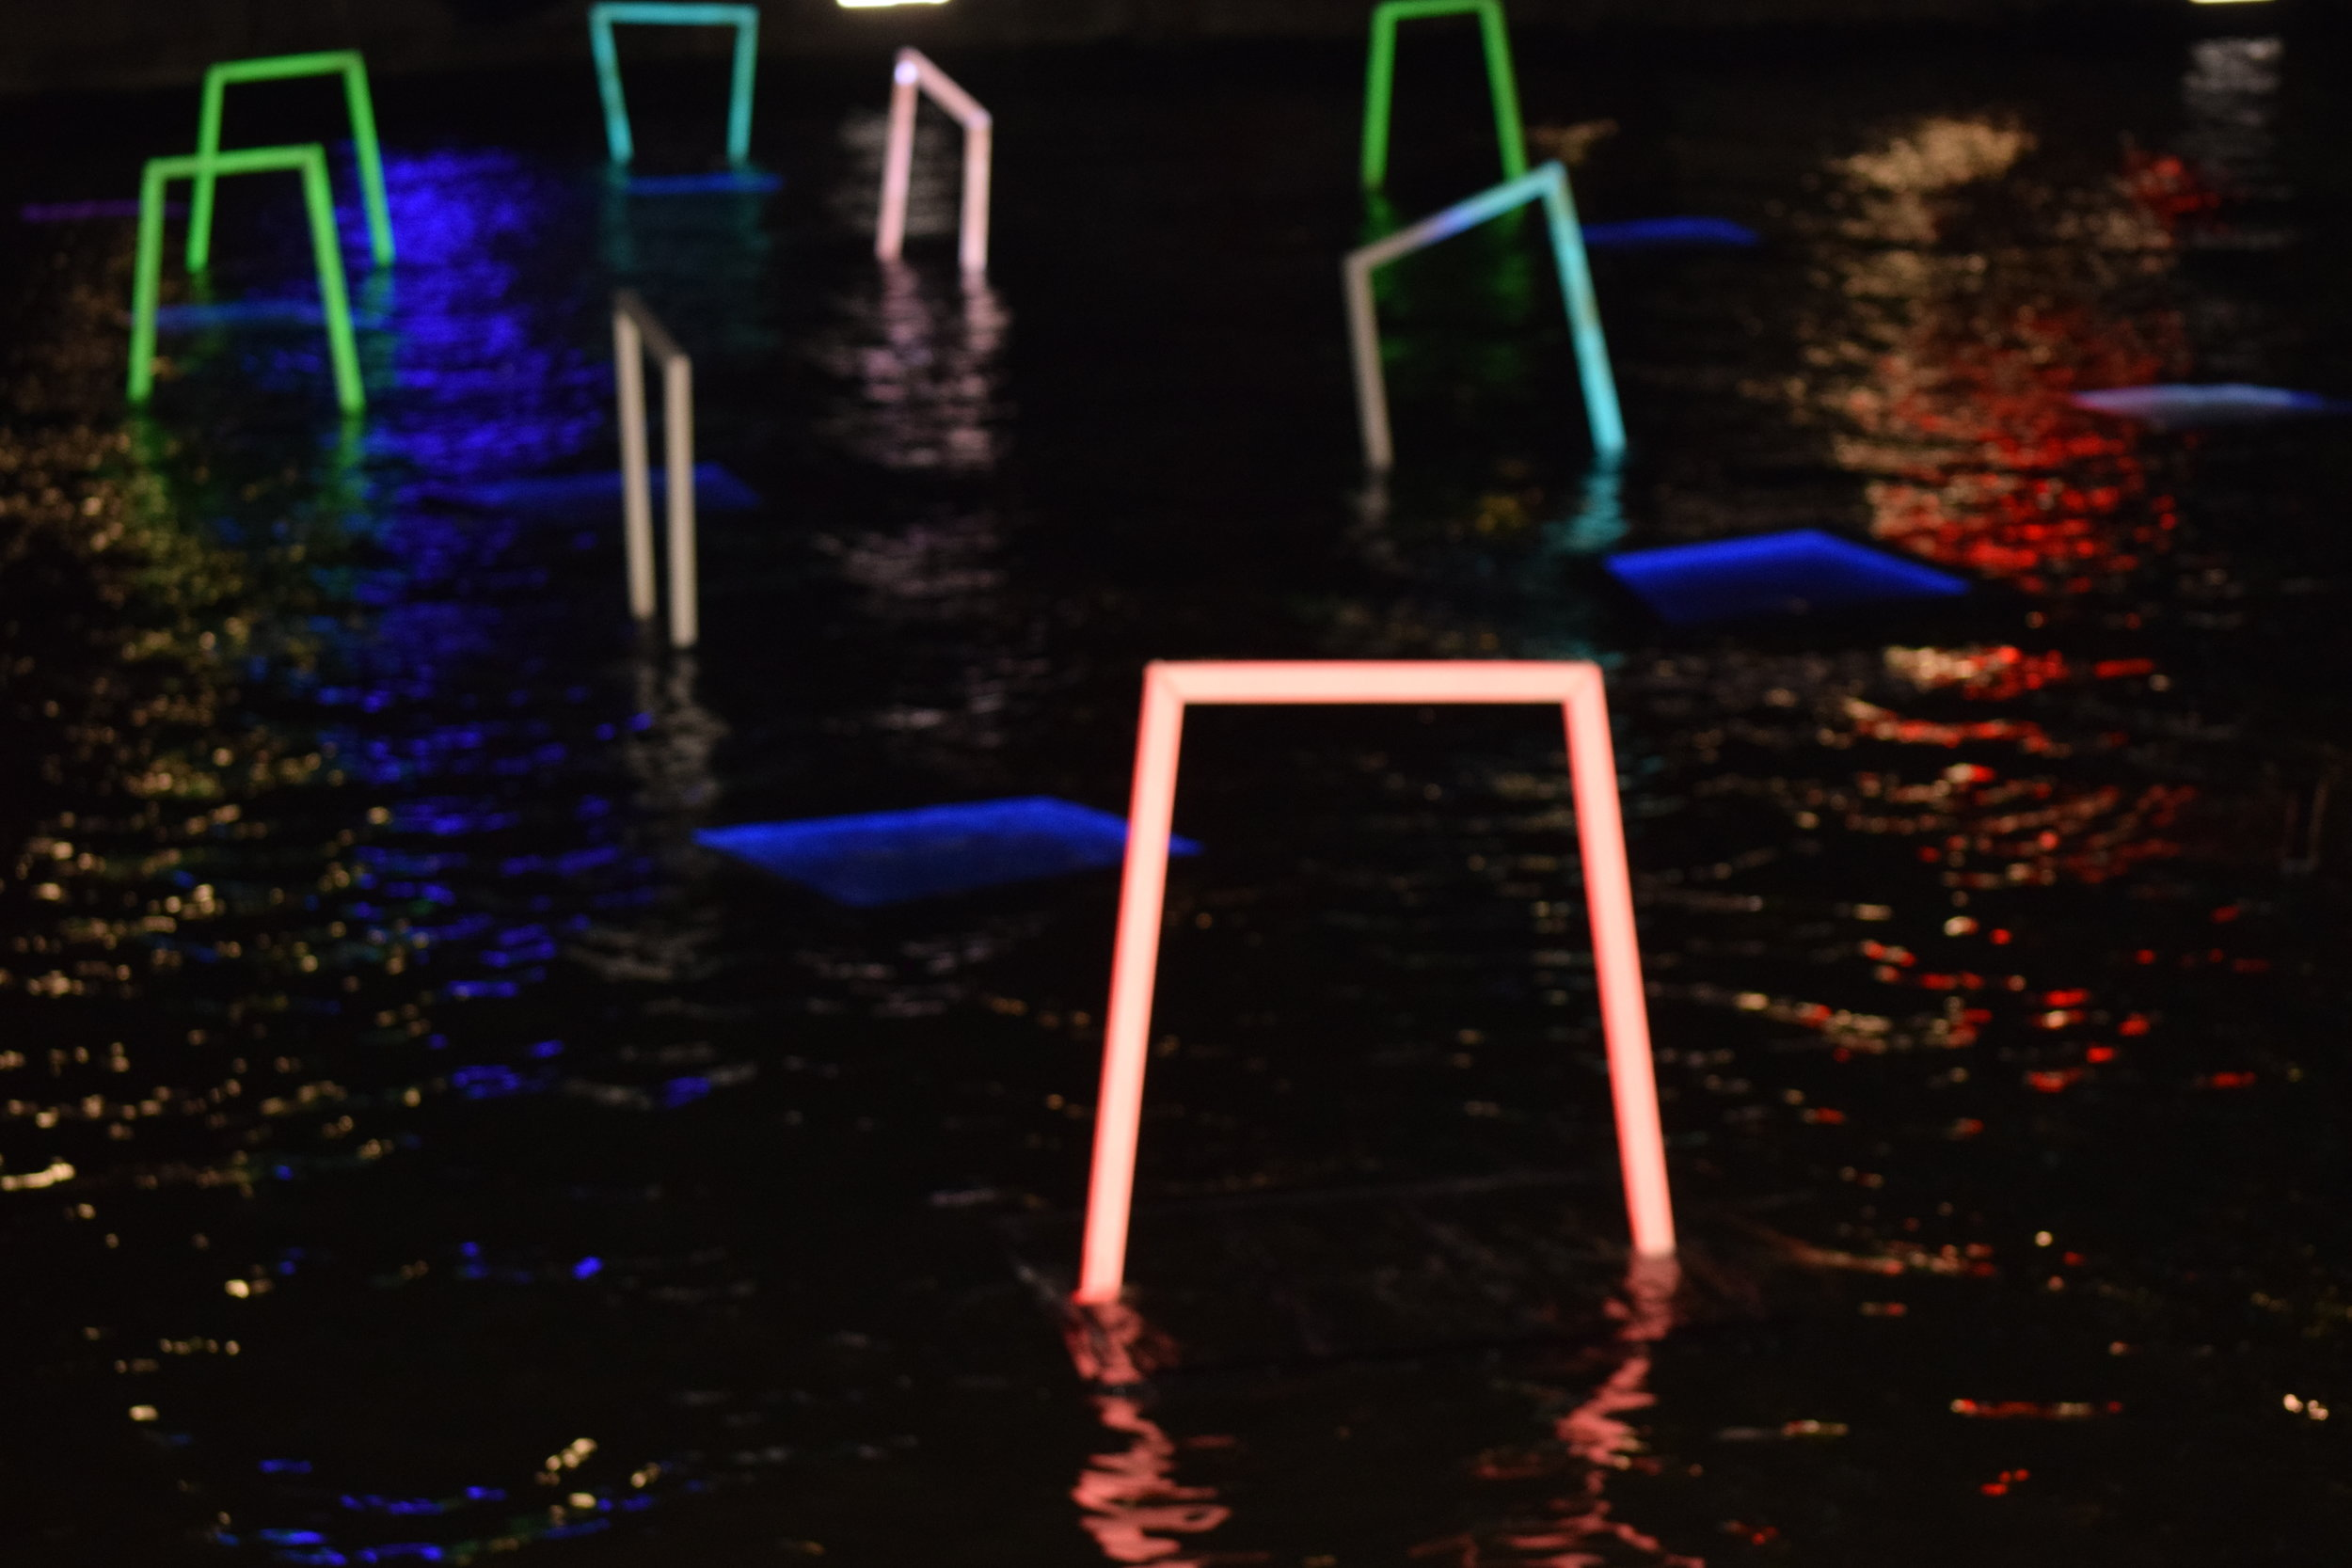 Water LIghts 1.JPG